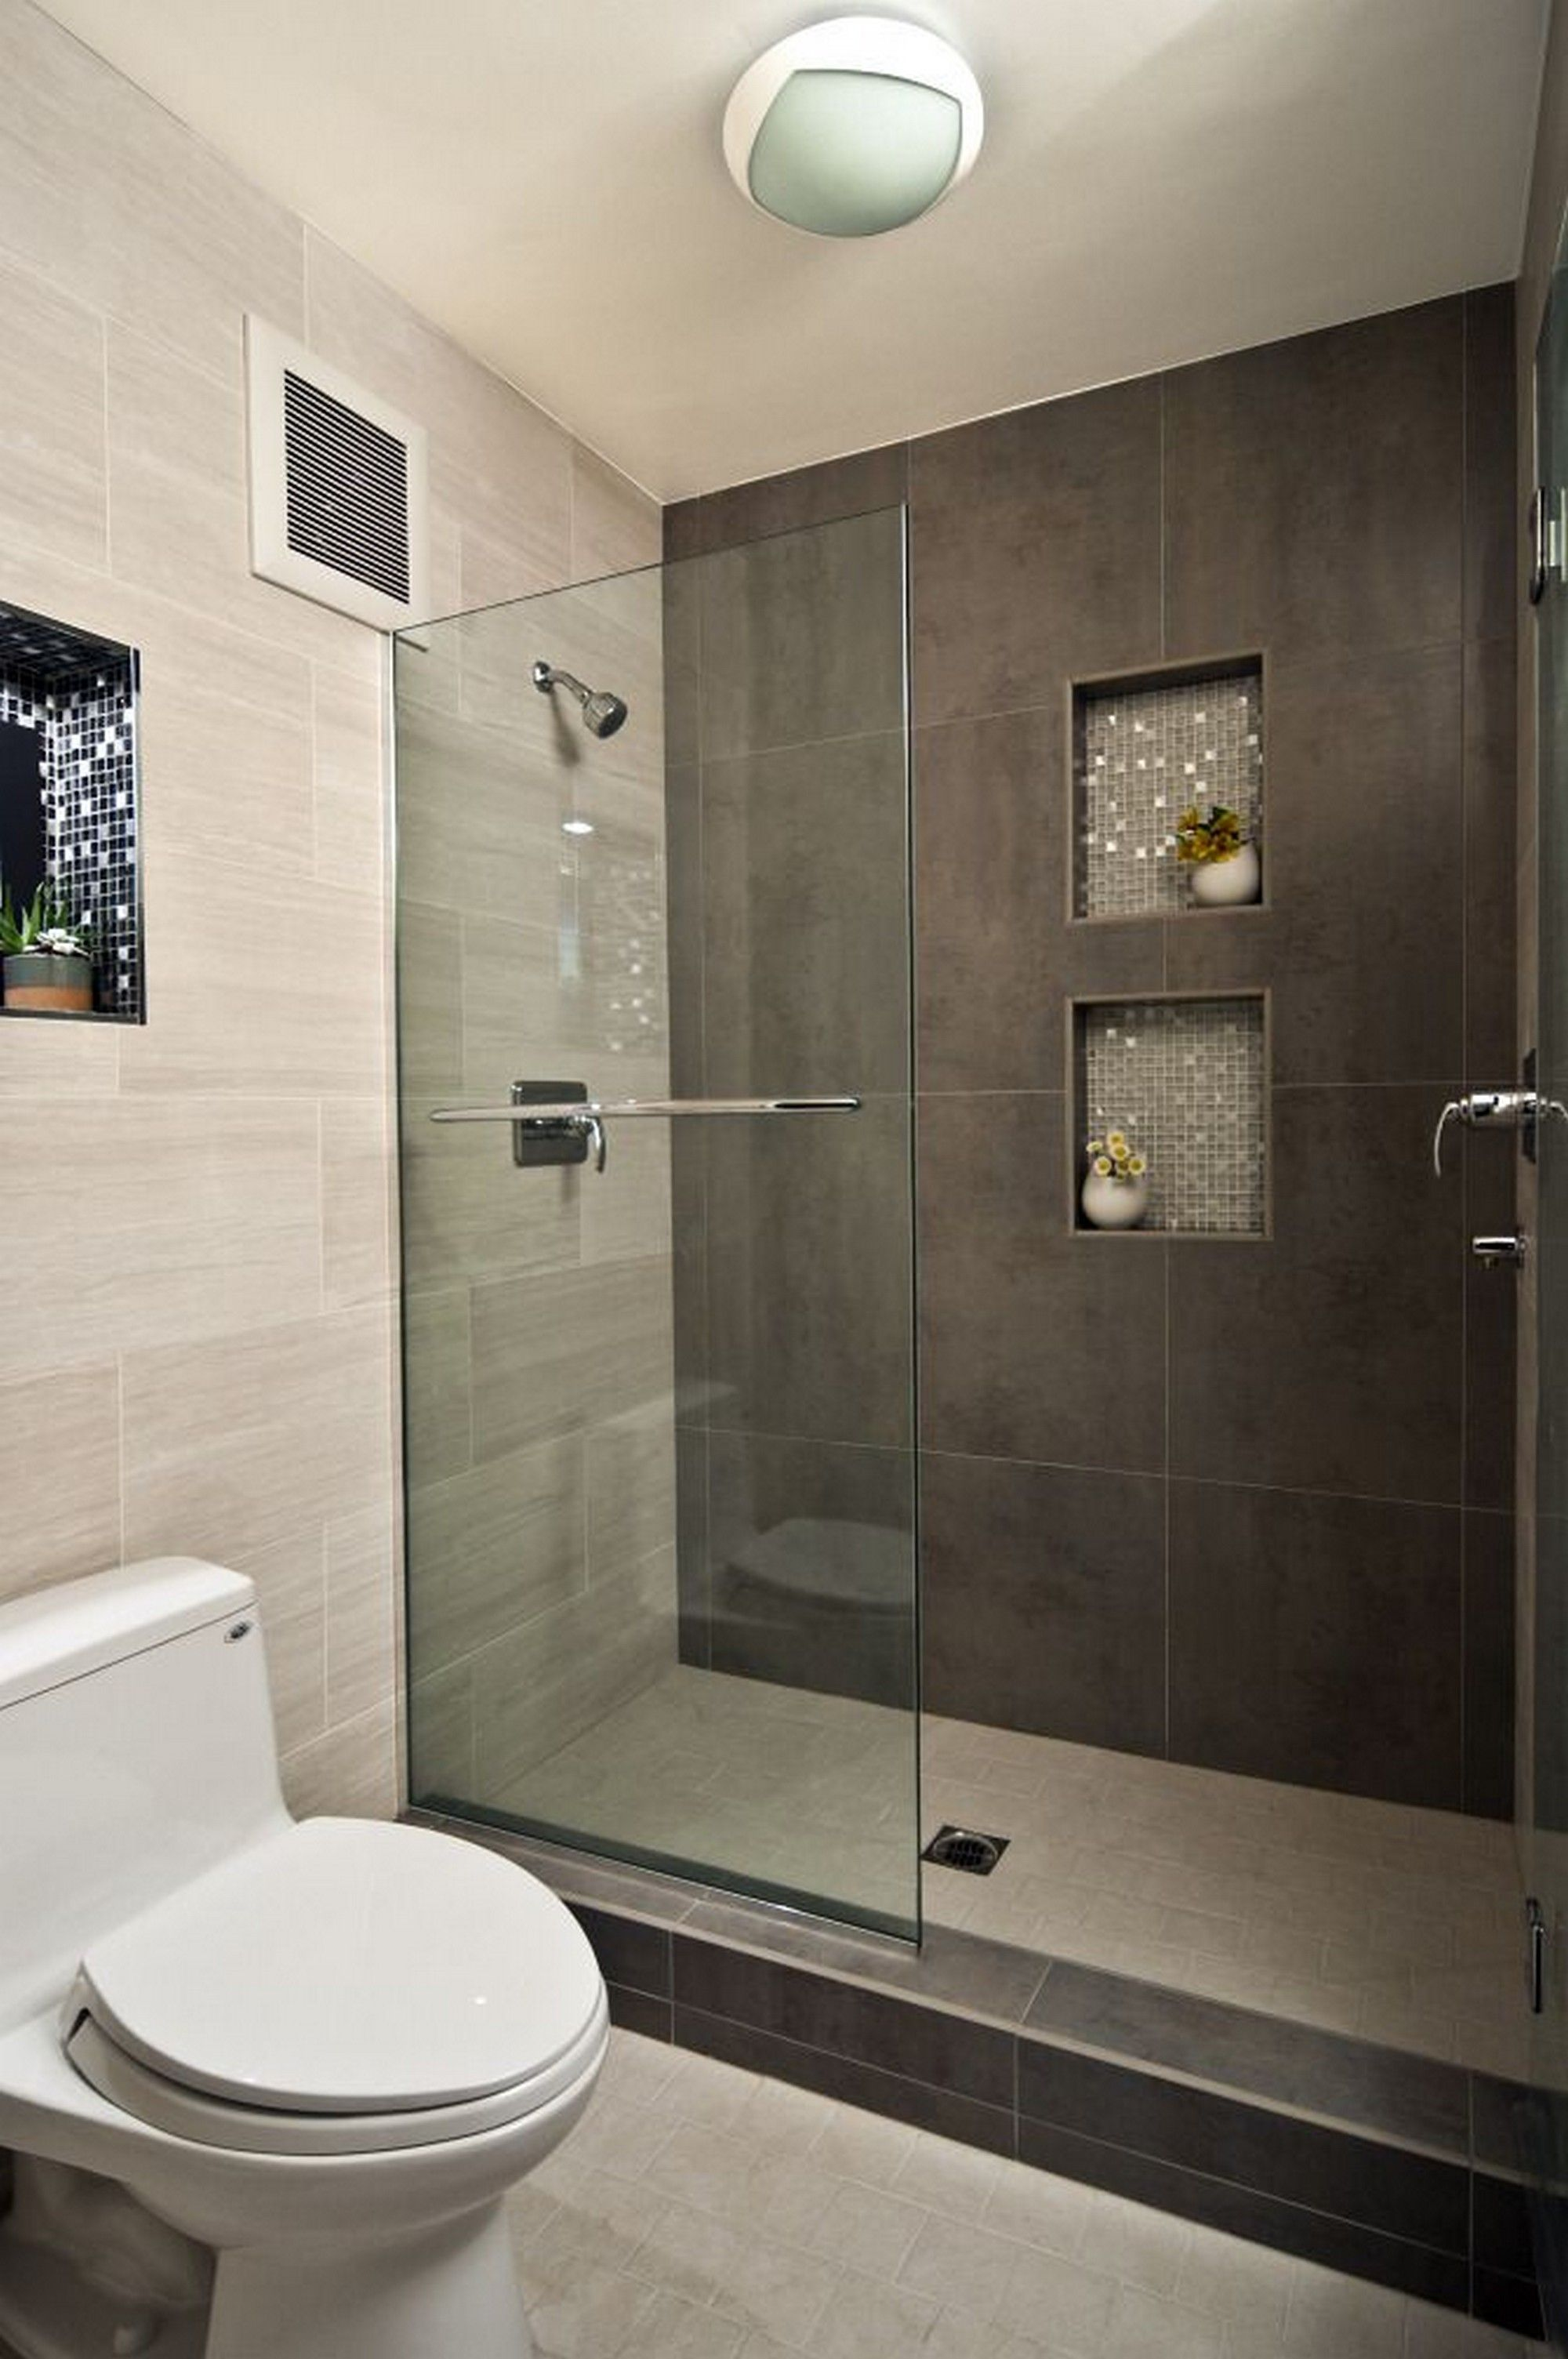 Small Bathroom Ideas With Tub And Shower modern bathroom design ideas with walk in shower | small bathroom